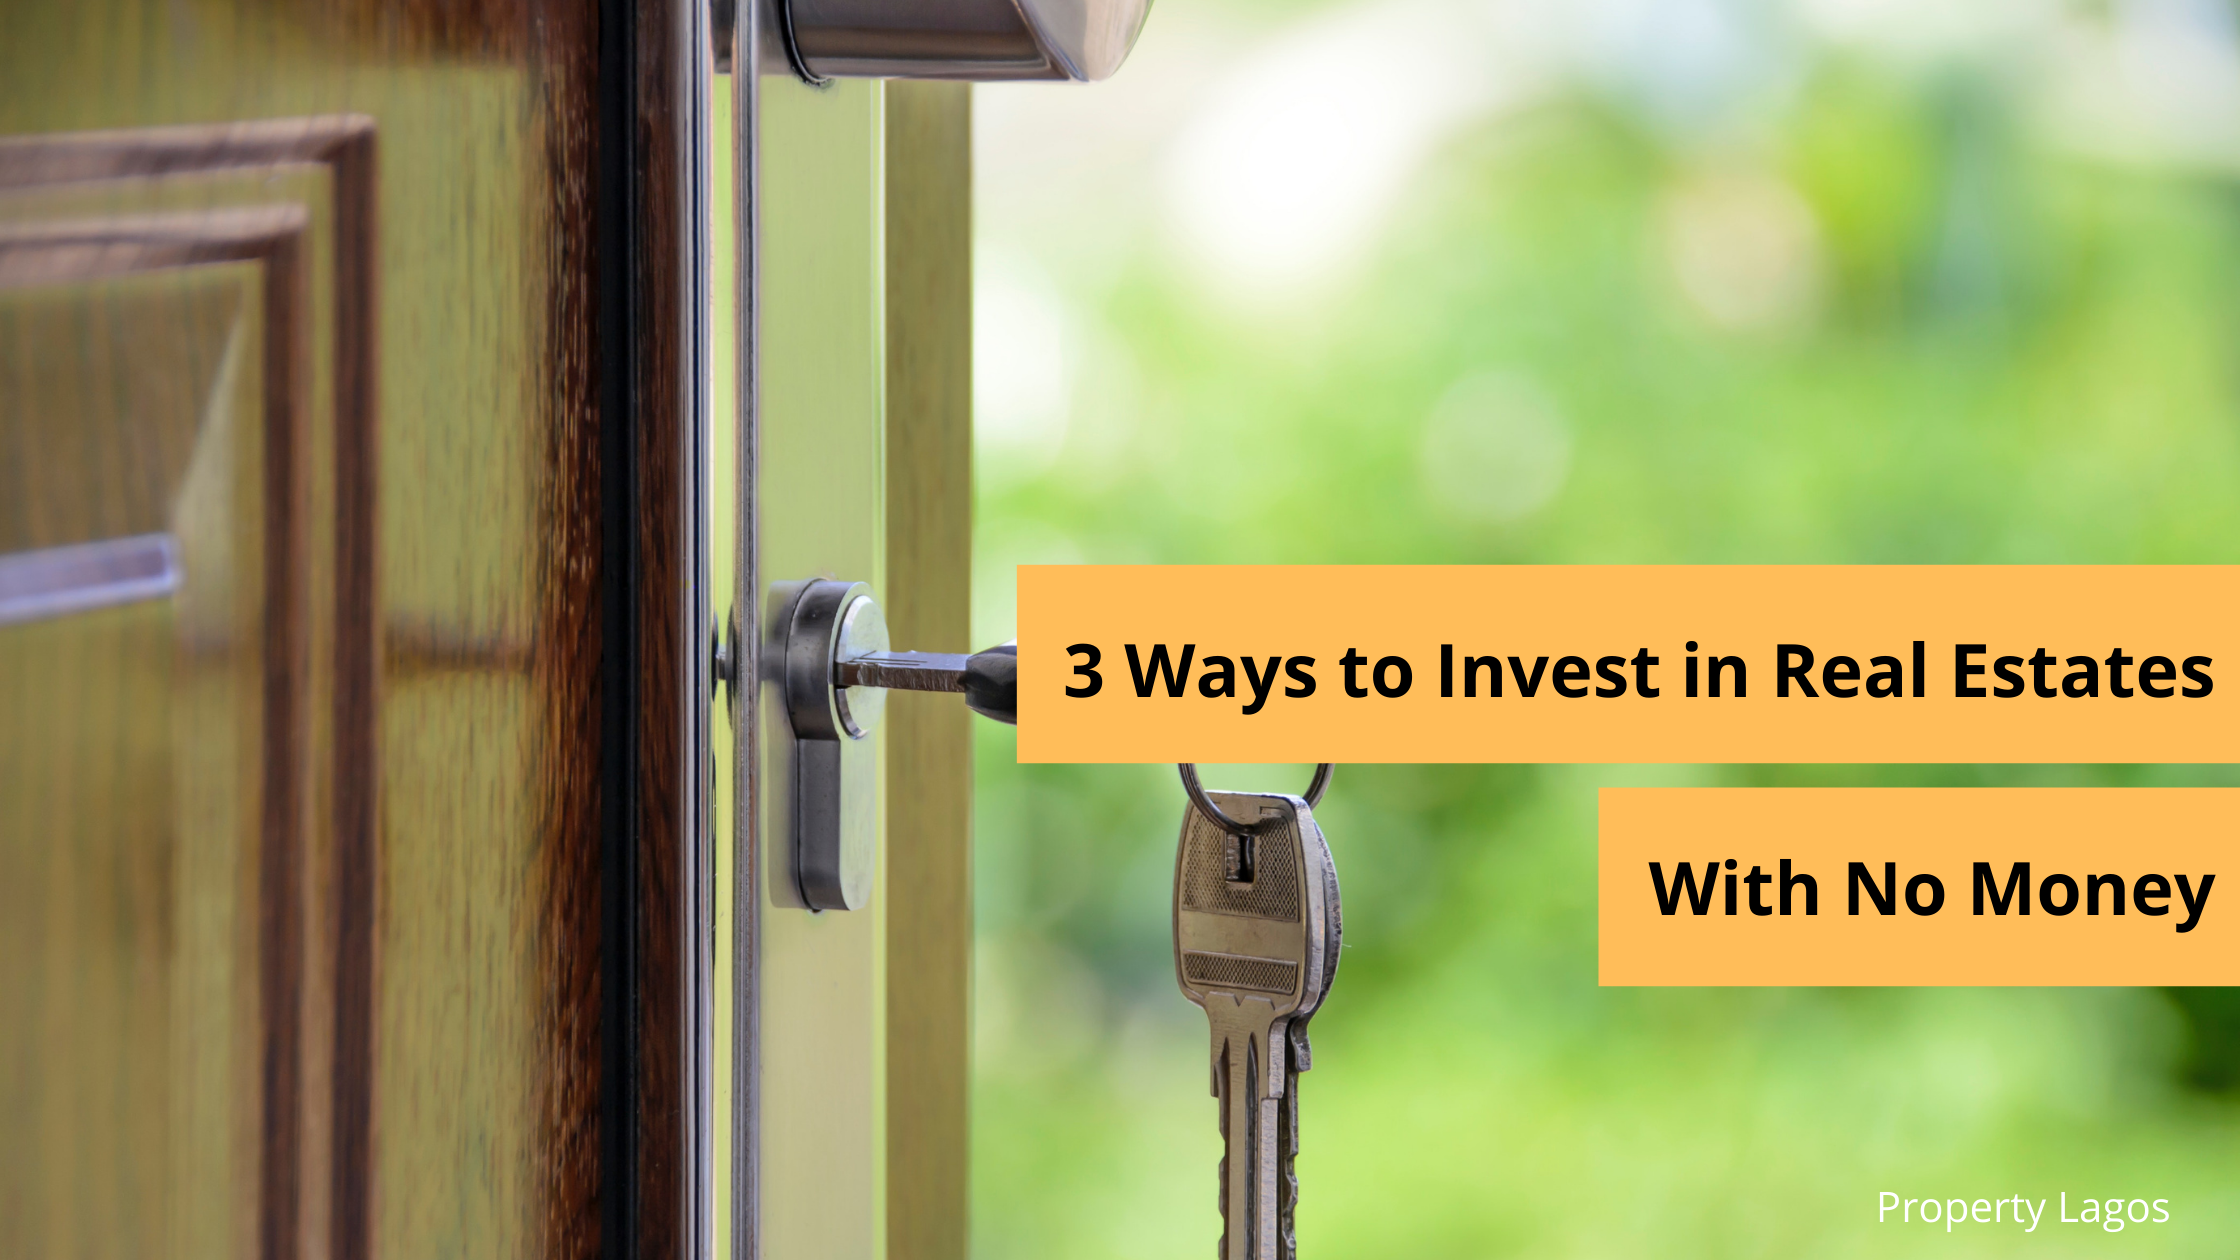 how to easily invest in real estates without money in Nigeria